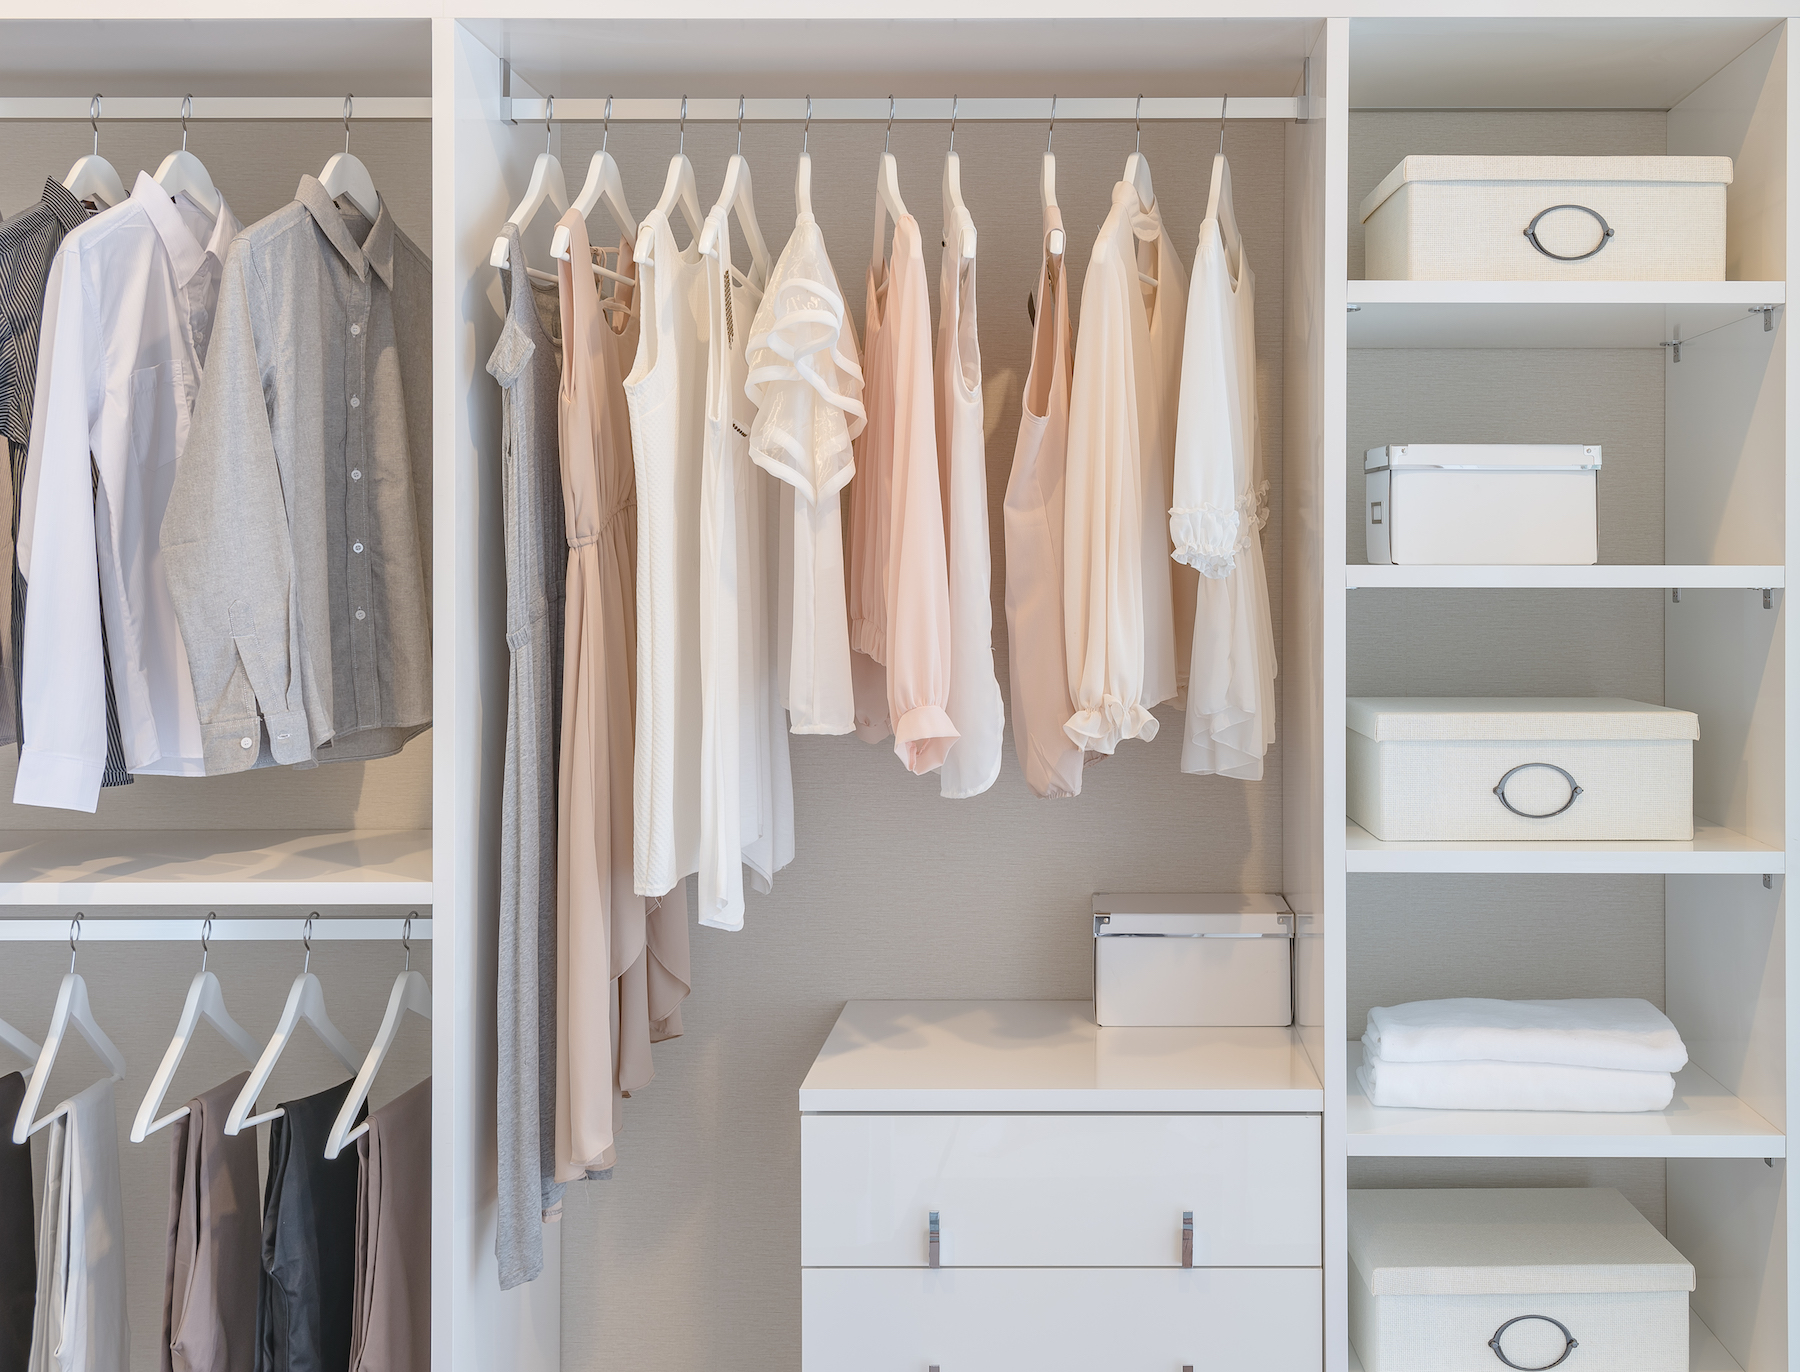 Organized Clothes Closet with blouses